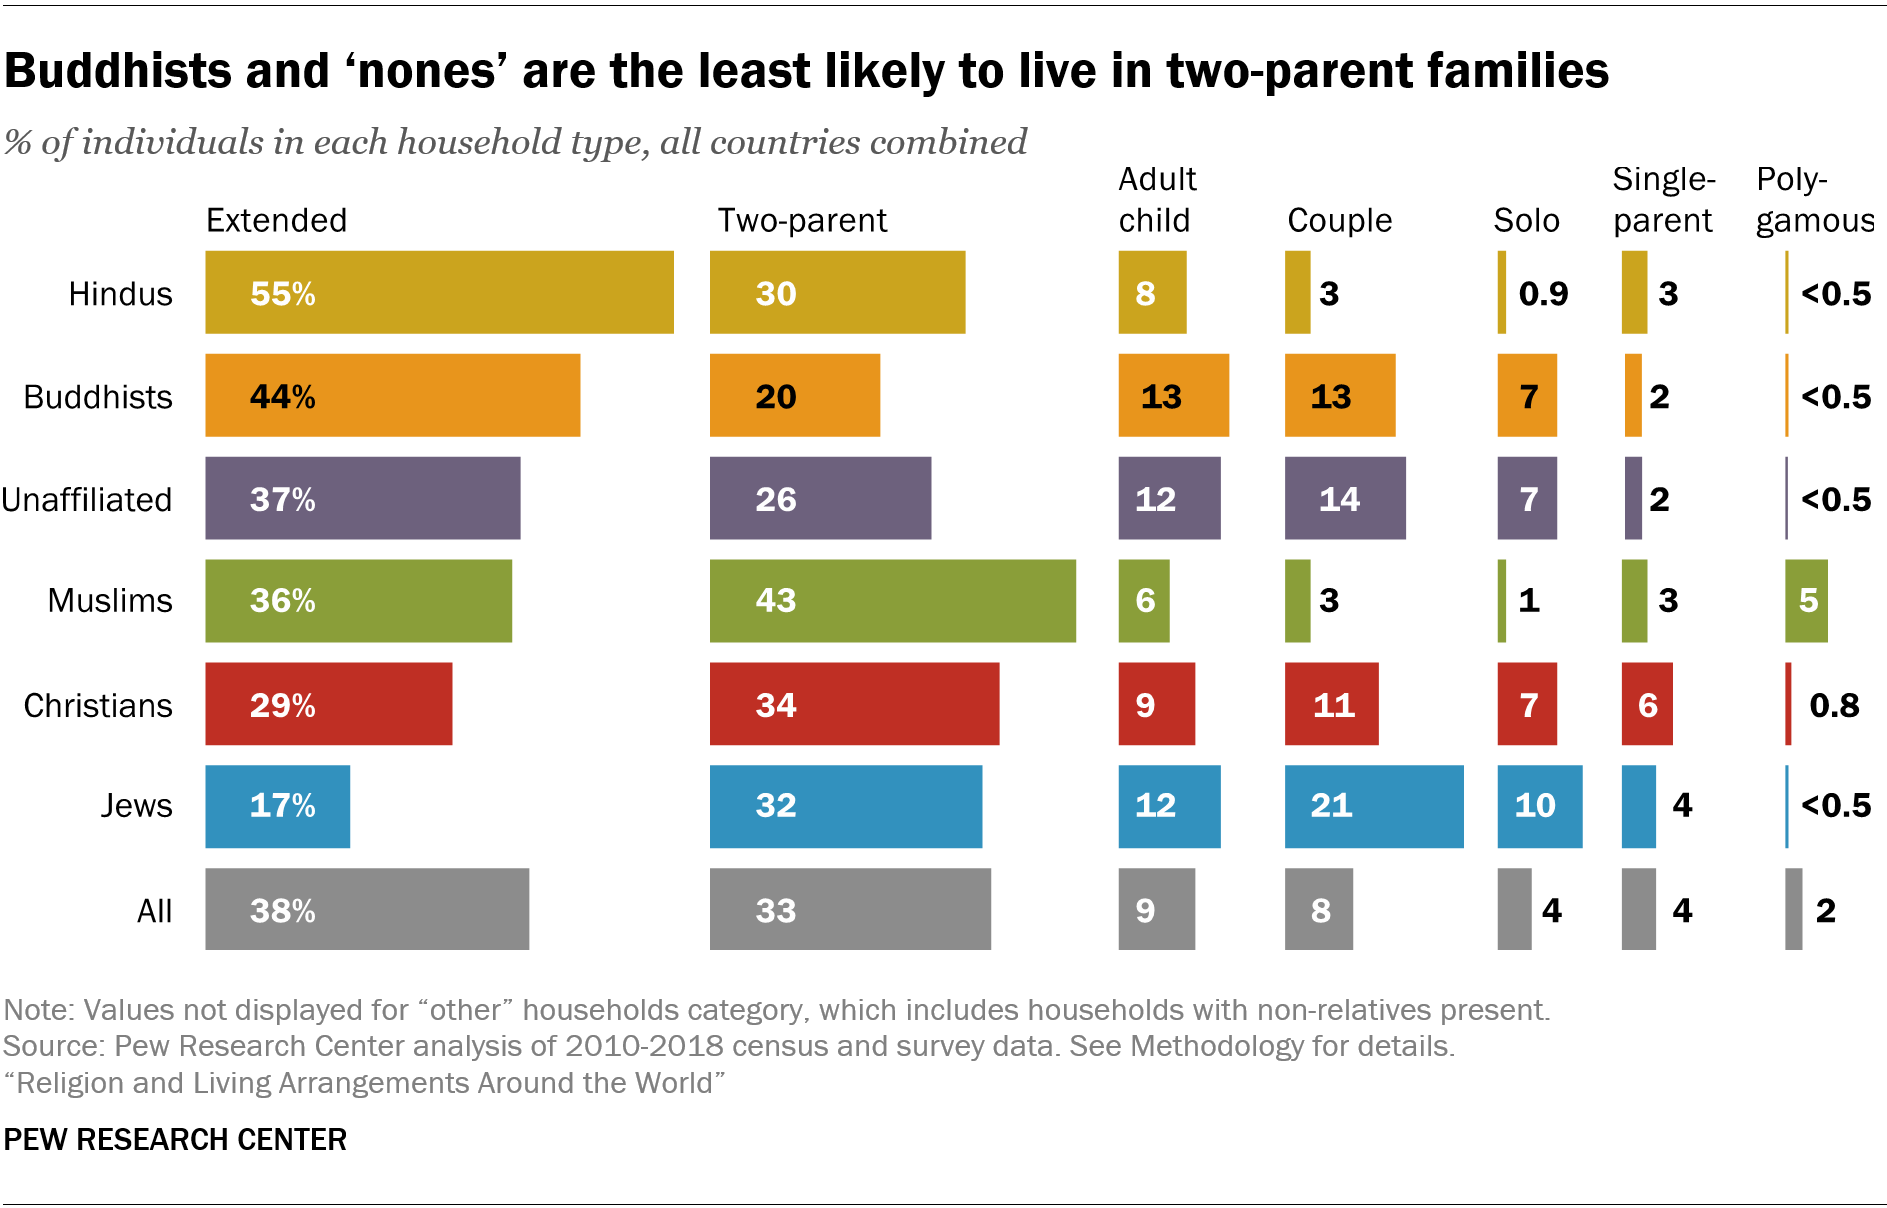 Buddhists and 'nones' are the least likely to live in two-parent families